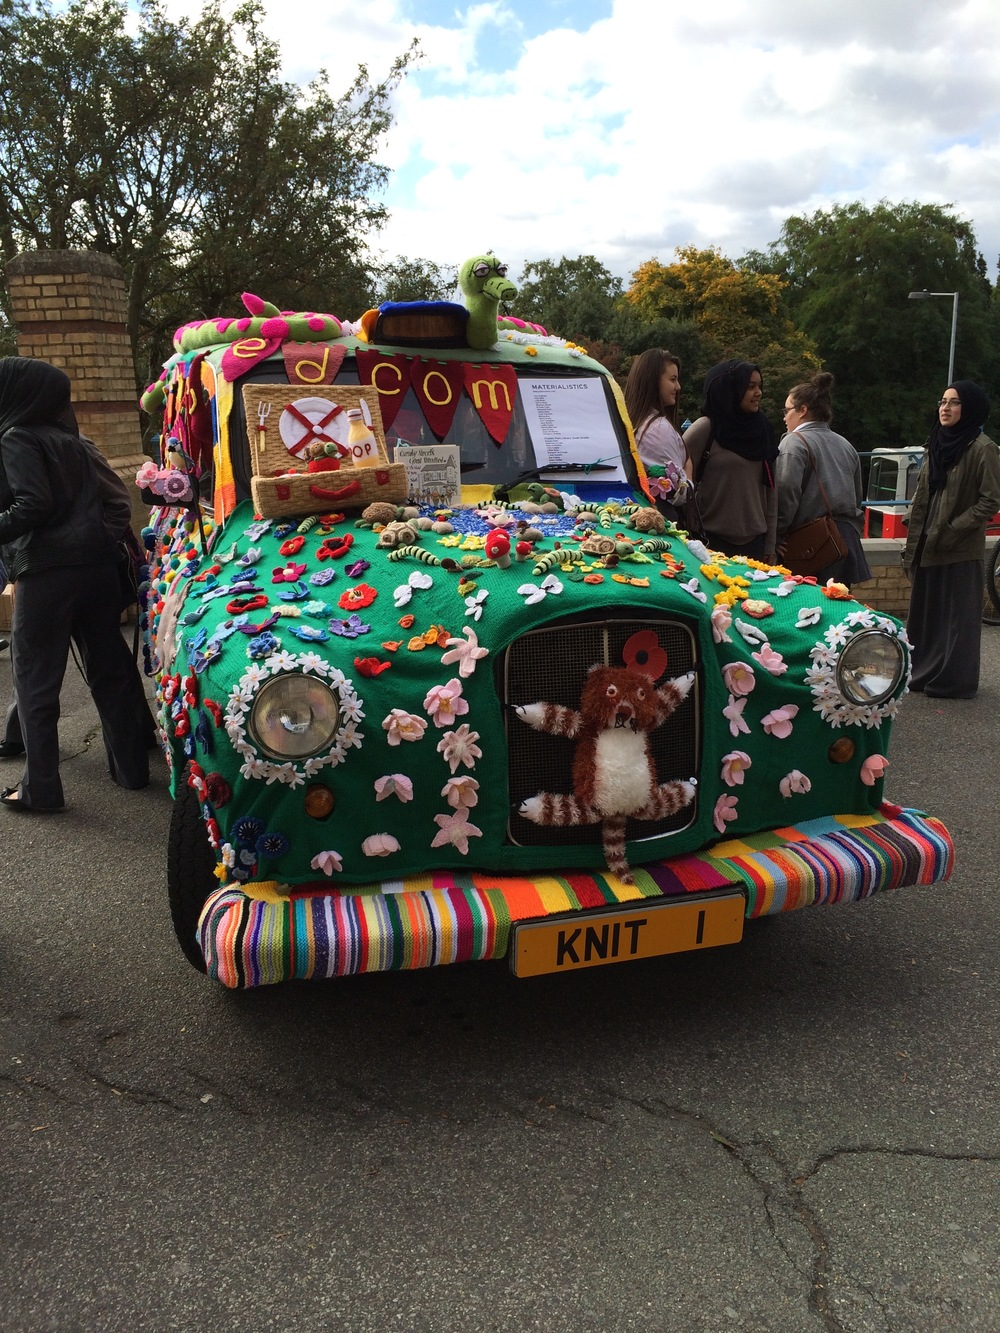 This yarnbombed taxi is from the Ally Pally show in 2013 - there's always lots of wonderful textile art exhibited as part of the show. It's not just about the shopping!